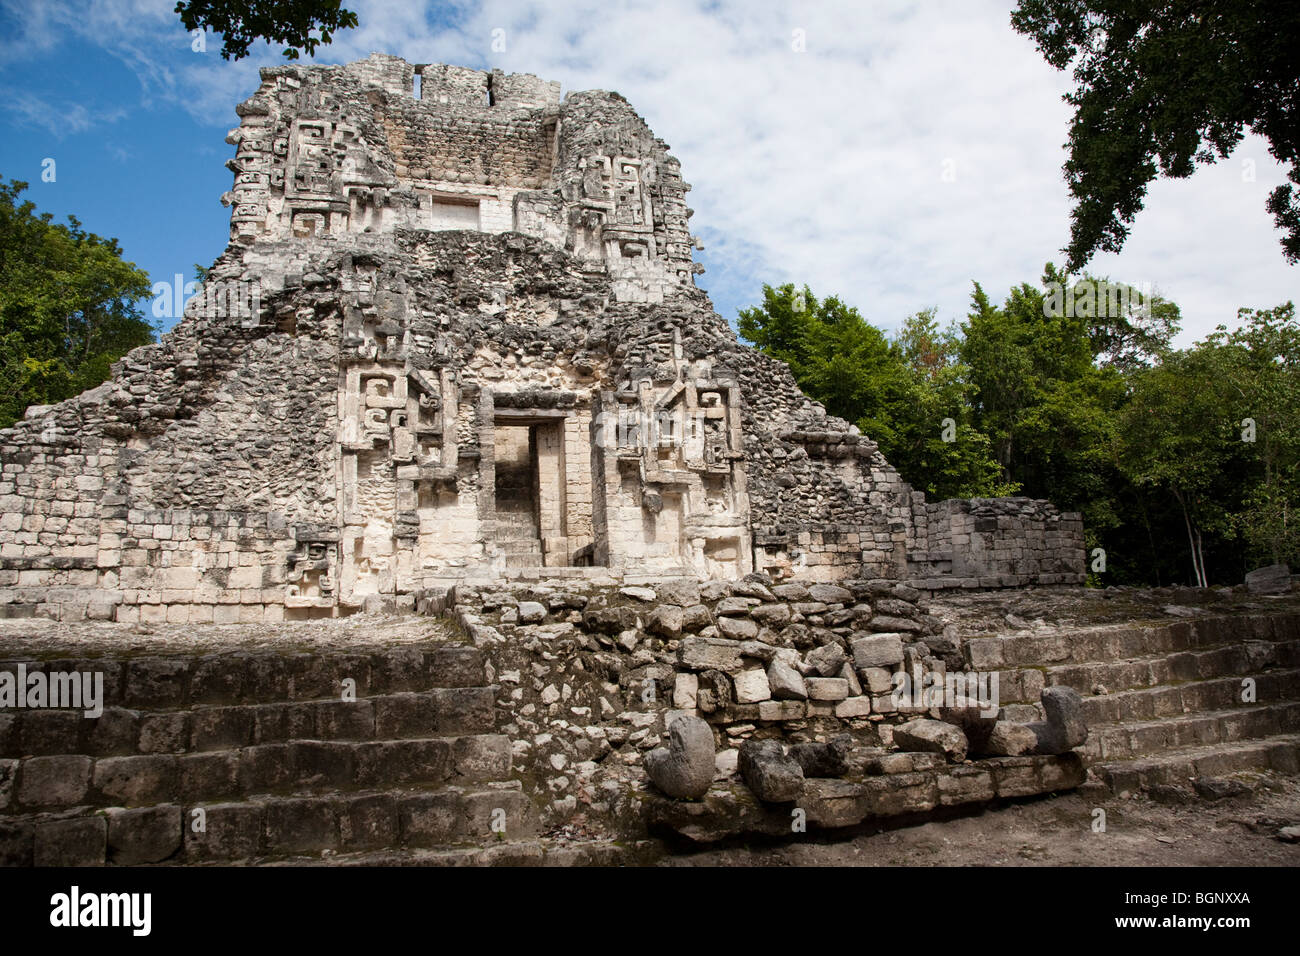 Structure XX. Chicanná Maya Ruins archaeology site, Campeche Mexico. - Stock Image